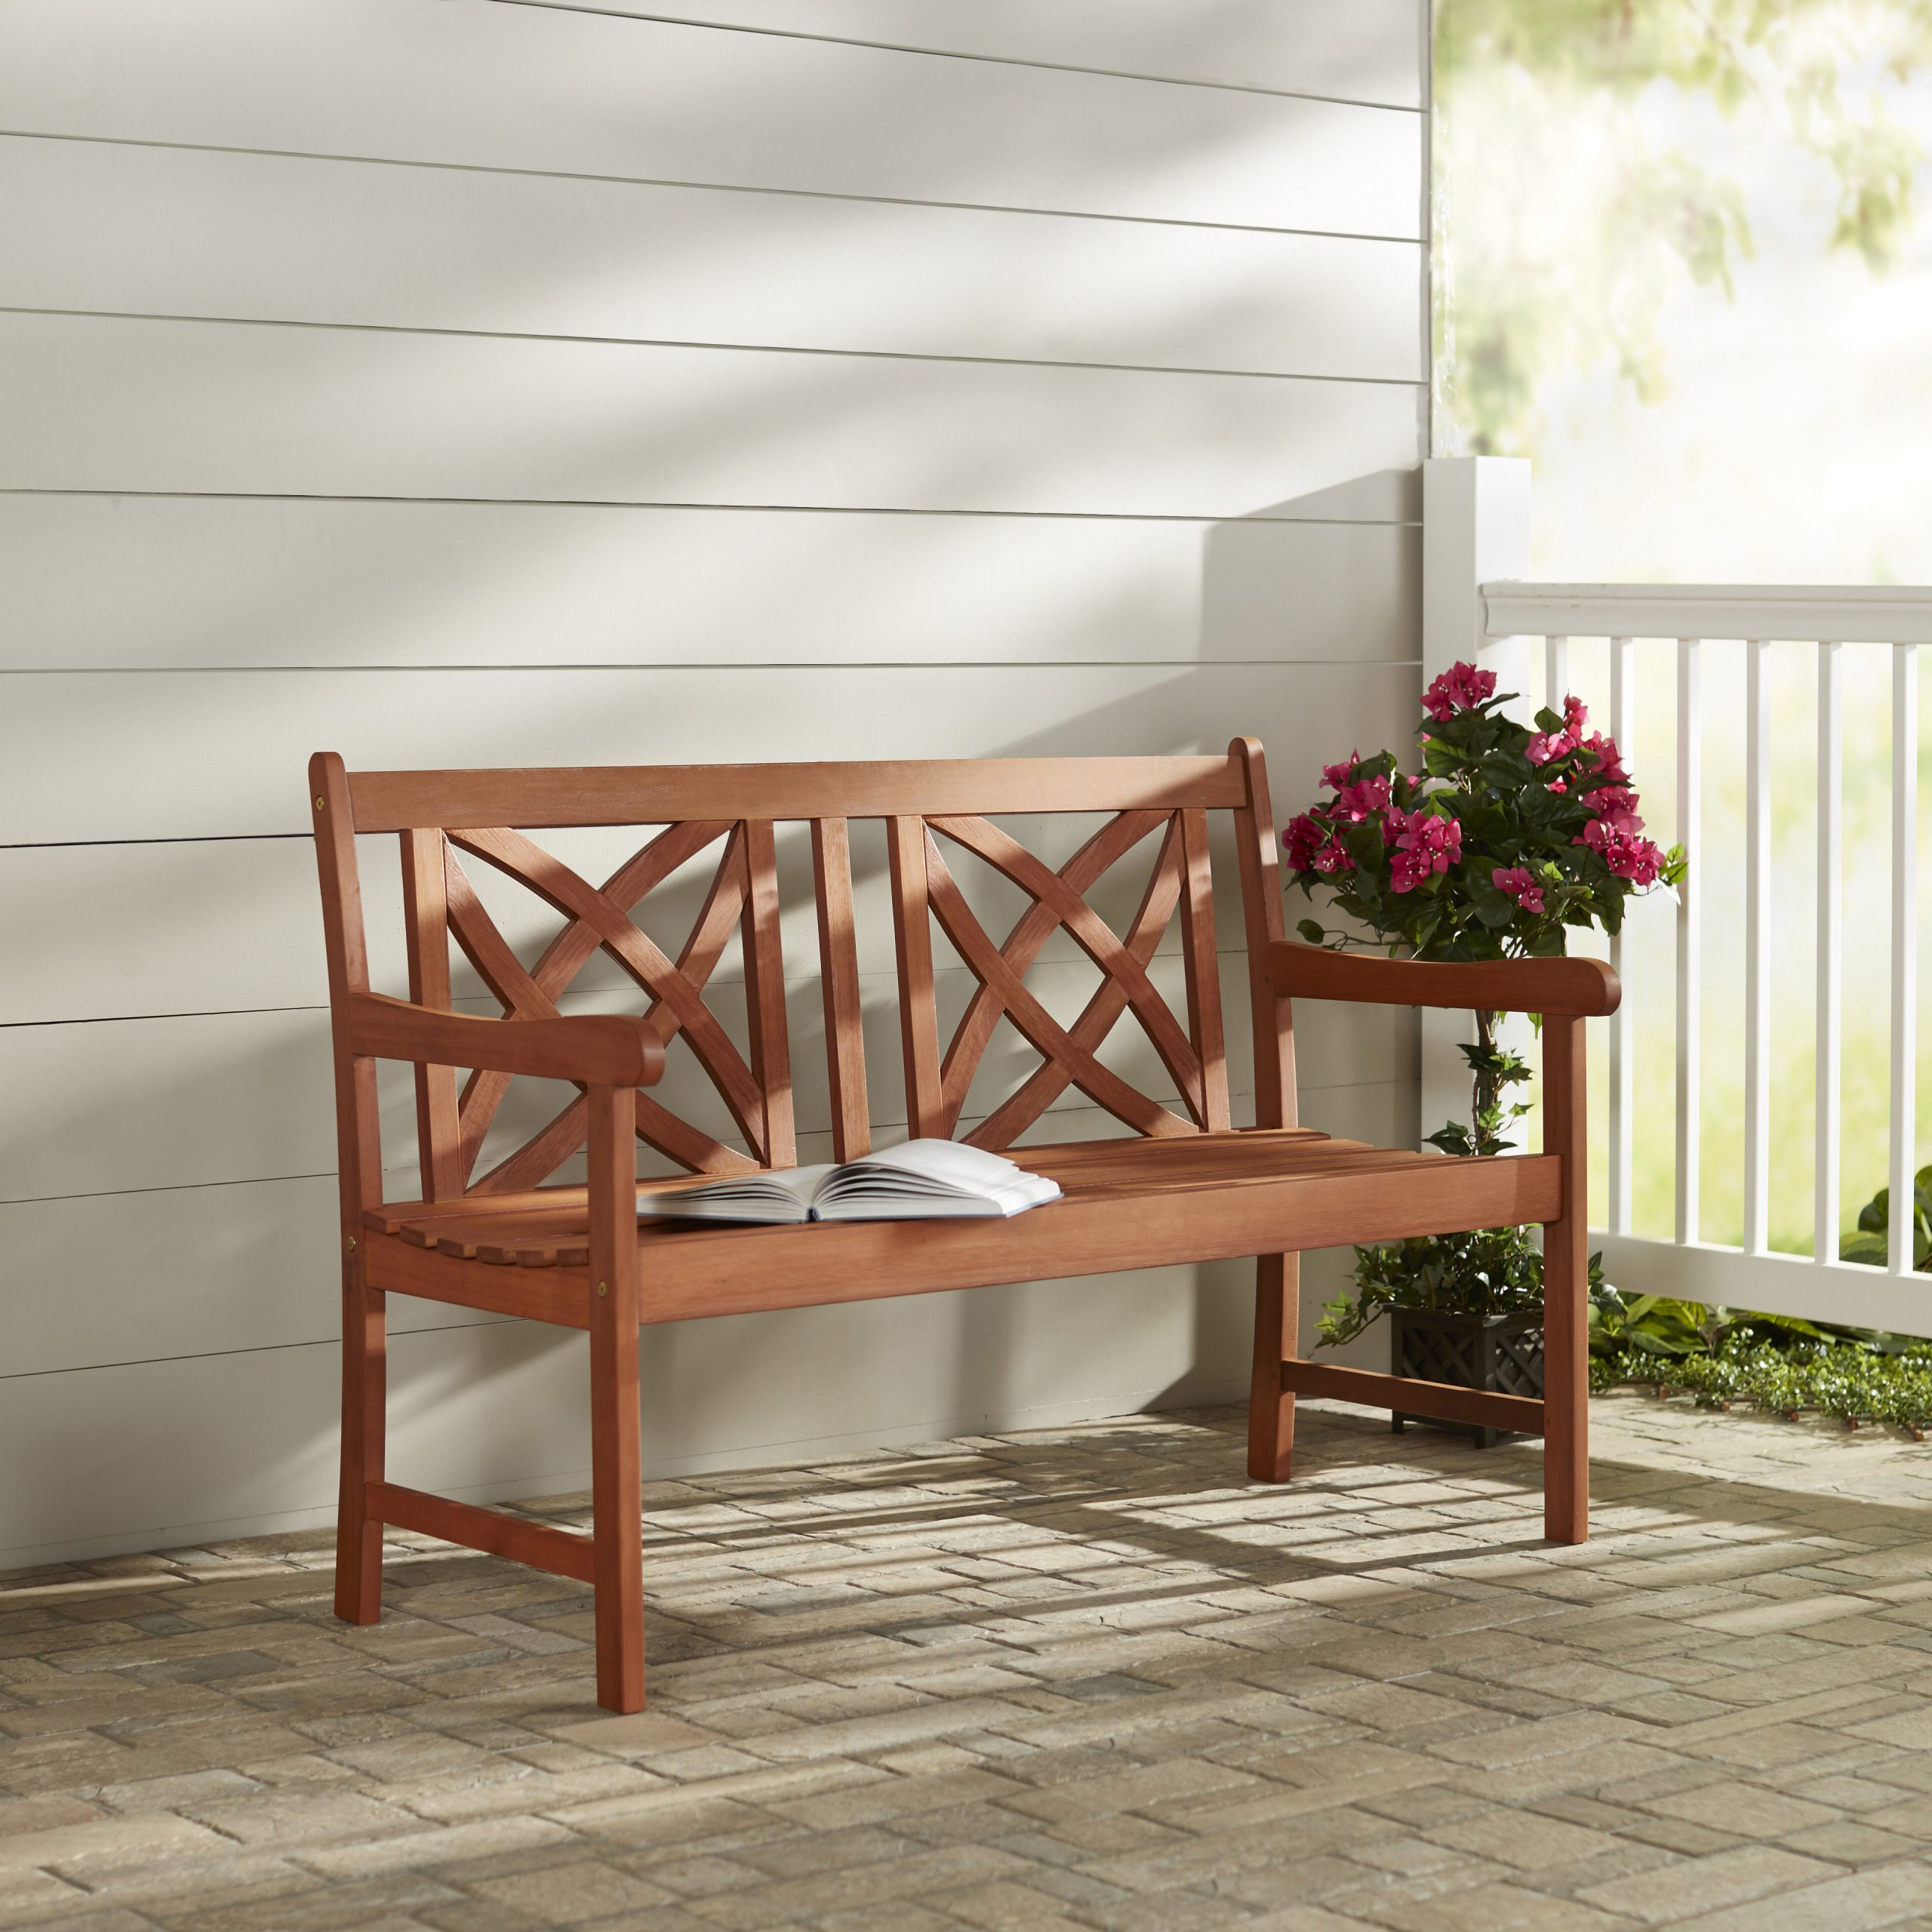 Wayfair Within 2020 Strasburg Blossoming Decorative Iron Garden Benches (View 18 of 30)